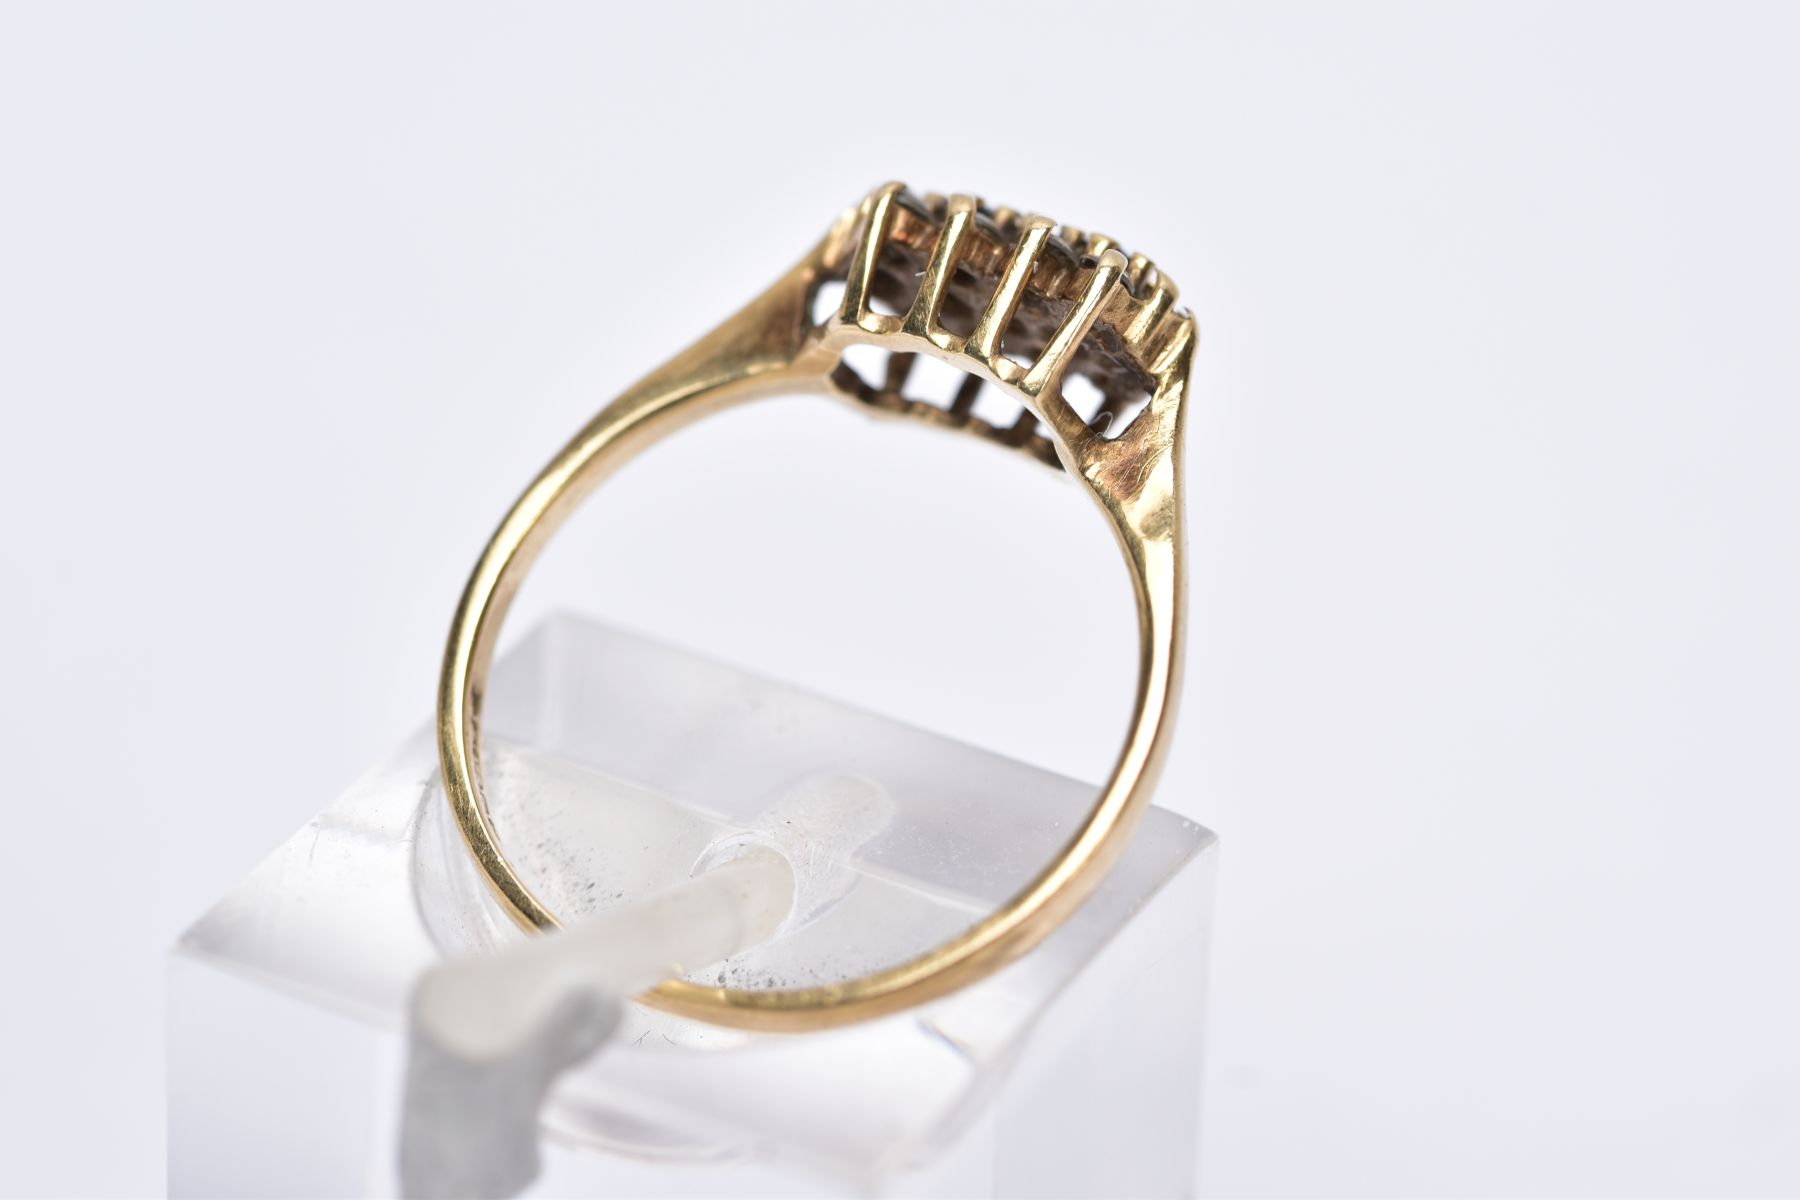 A 9CT GOLD CLUSTER RING, designed with a row of five circular cut blue sapphires, within two rows of - Image 3 of 3